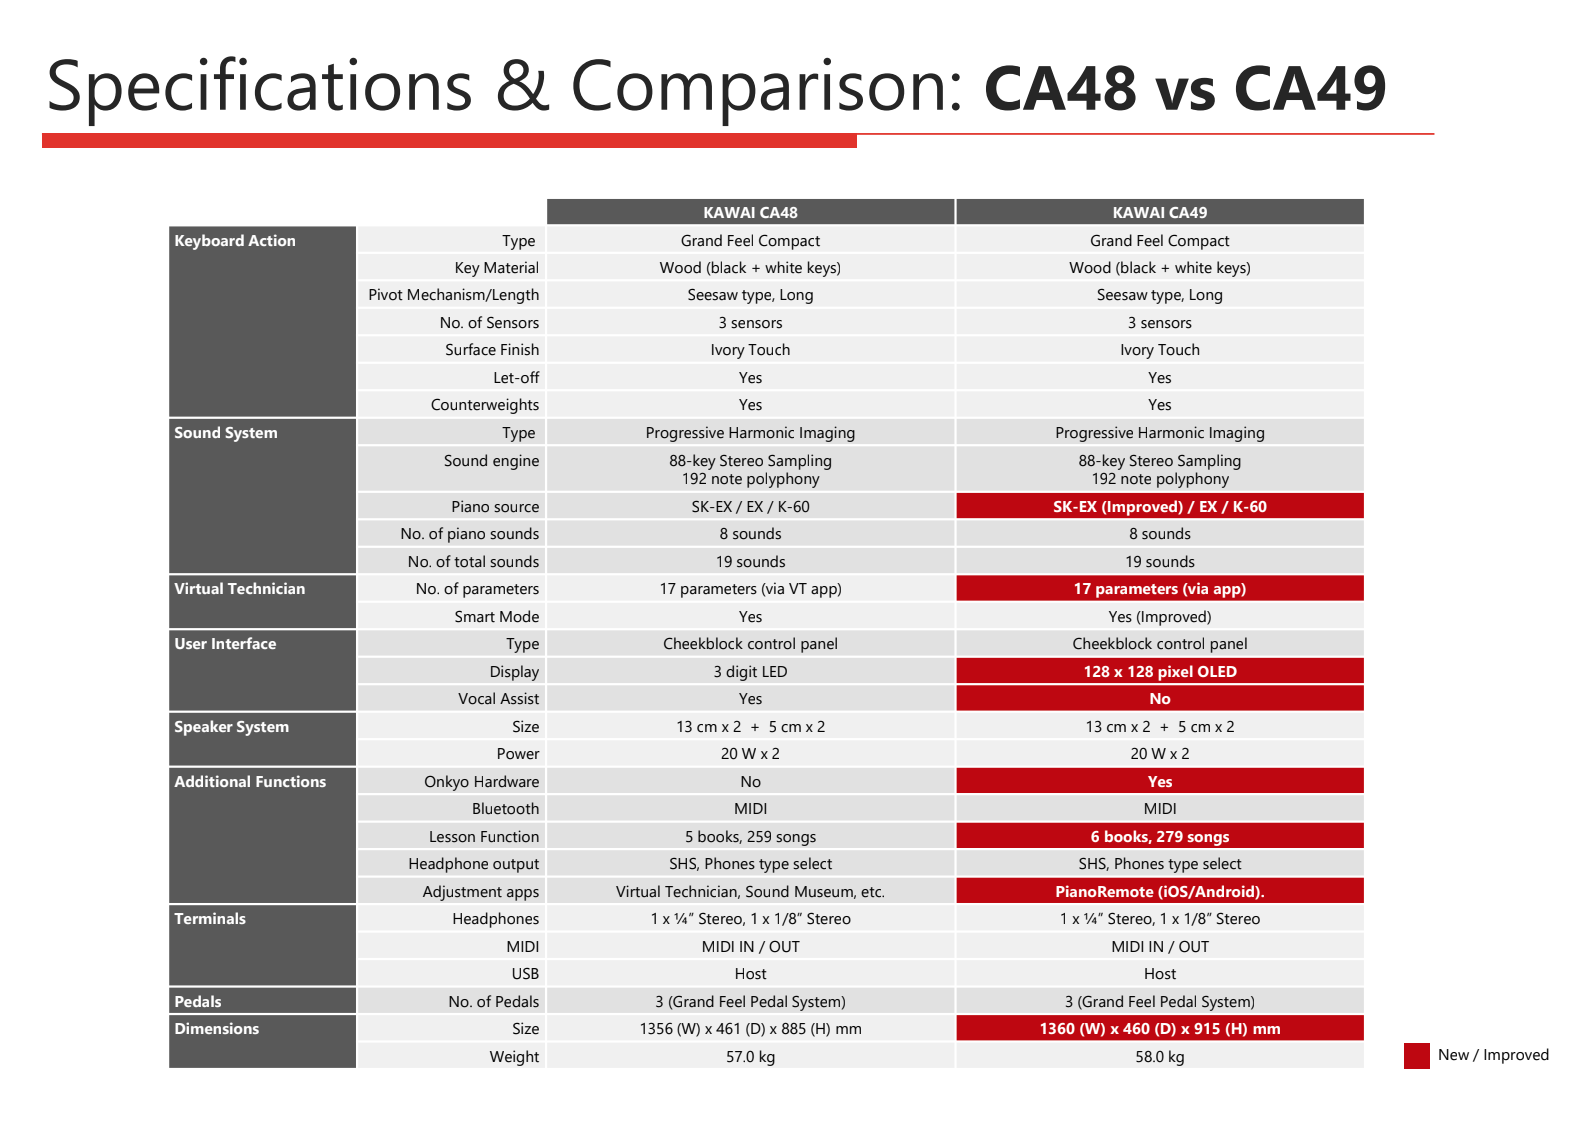 Specifications and features comparison chart for the Kawai CA48 and CA49 Concert Artist digital pianos